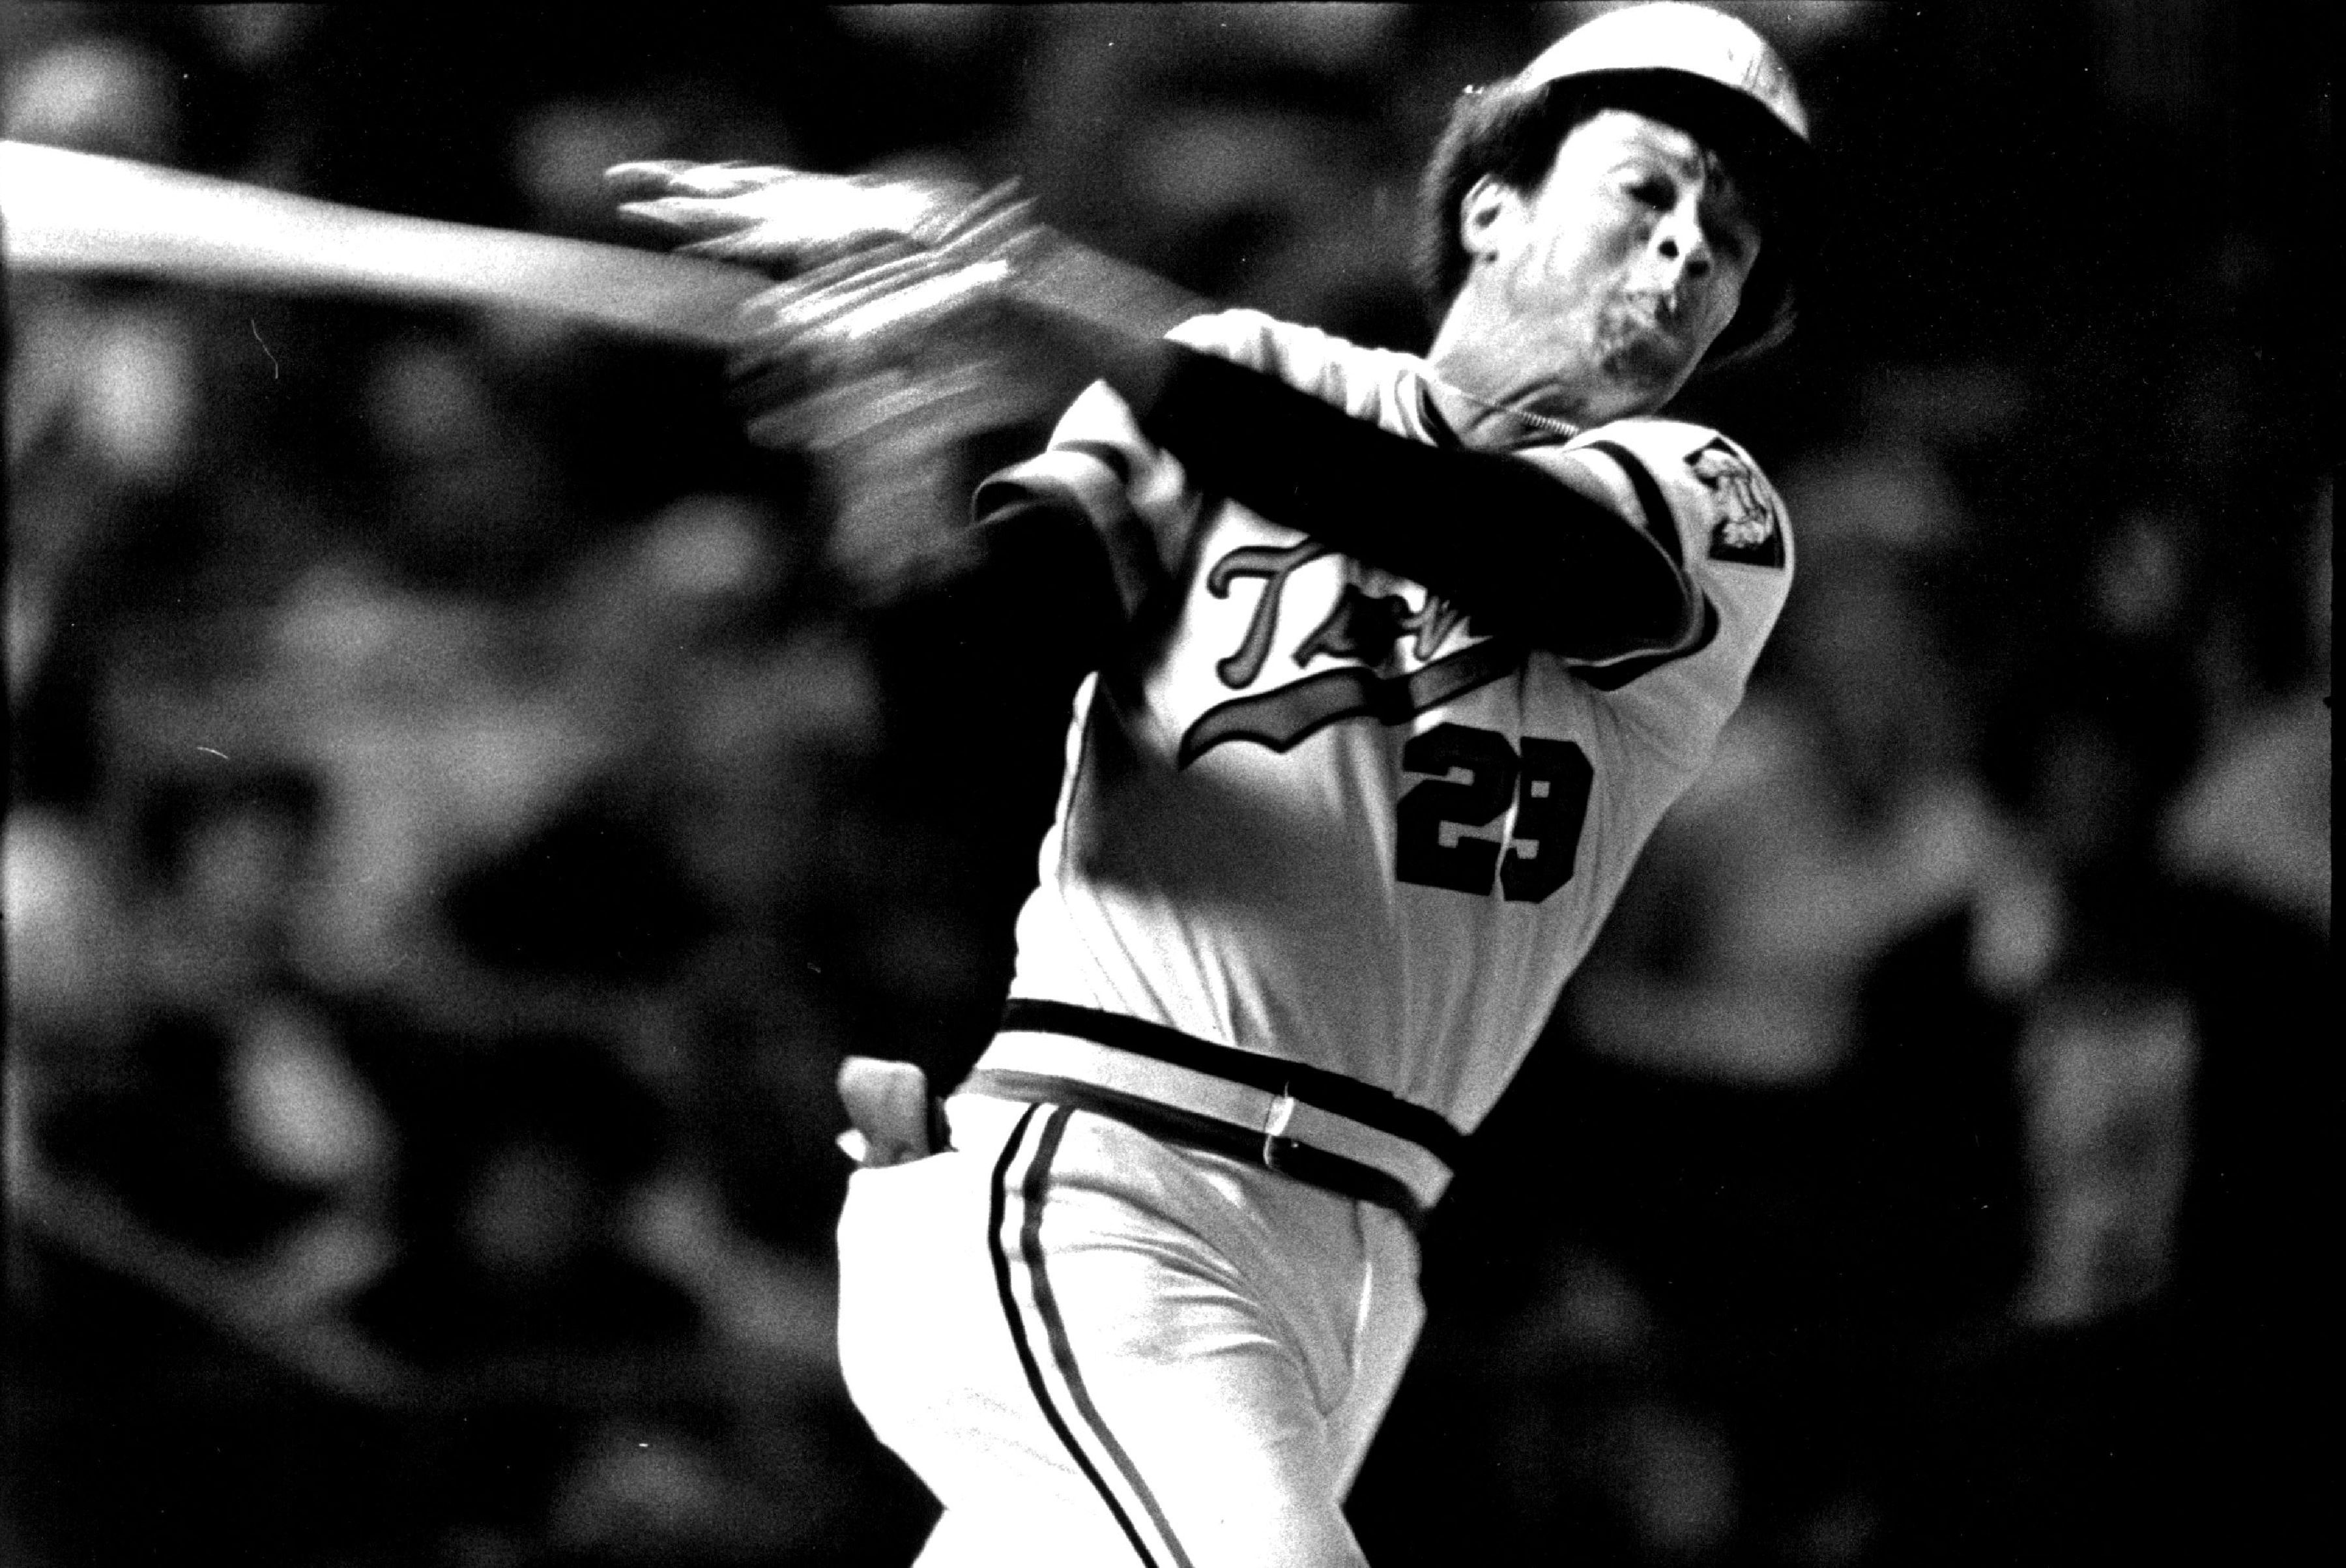 If Luis Arraez's swing and hitting approach at the plate looks familiar to Twins fans, it's because it's patterned after Hall of Famer Rod Carew.